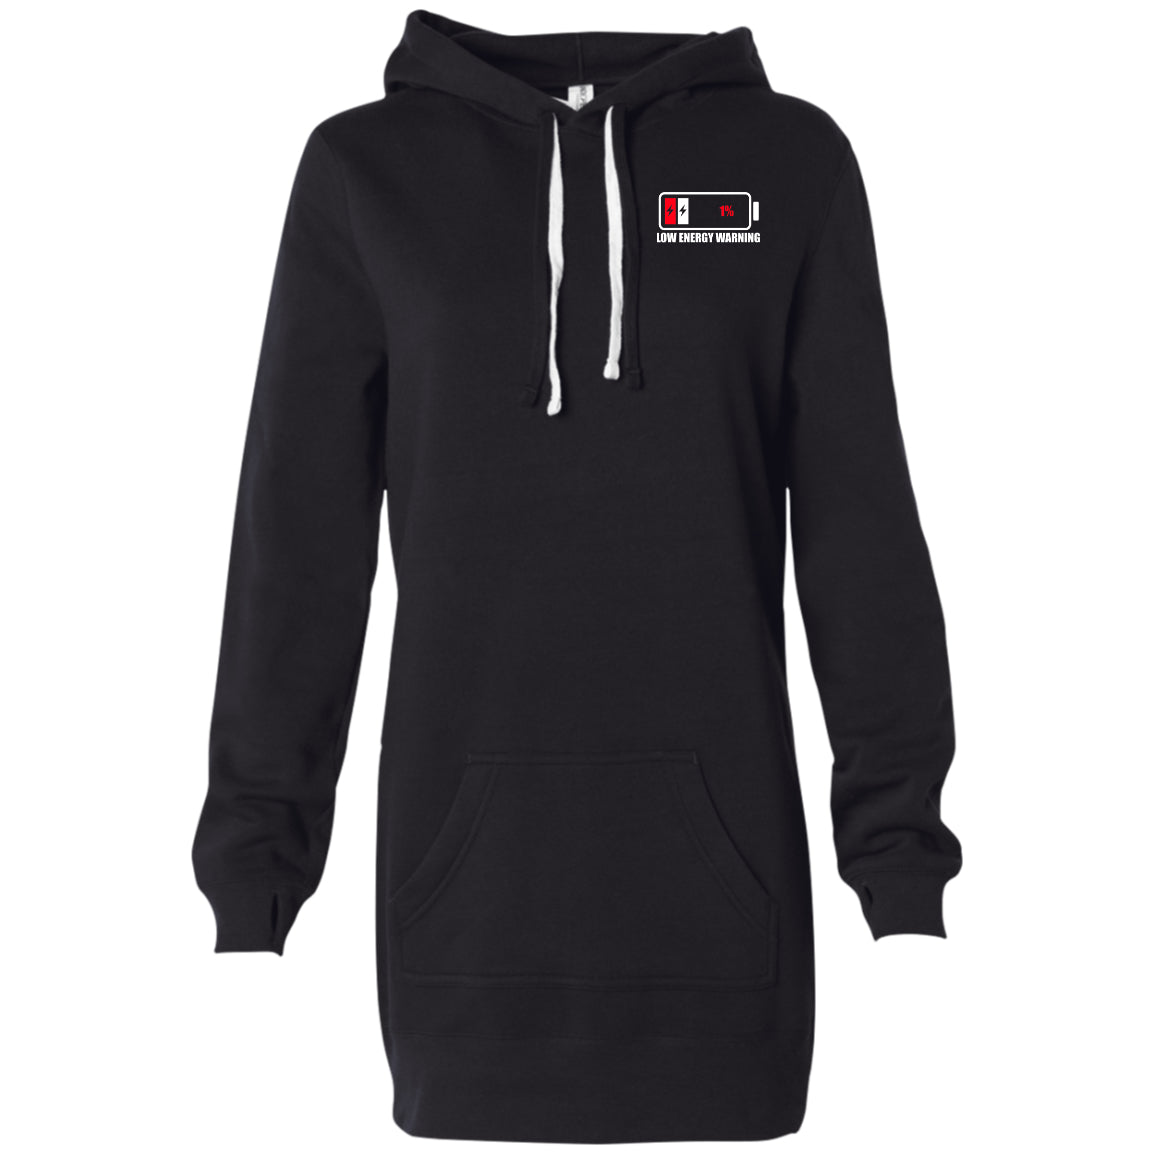 Low Energy Warning Women's Hooded Pullover Dress - The Unchargeables